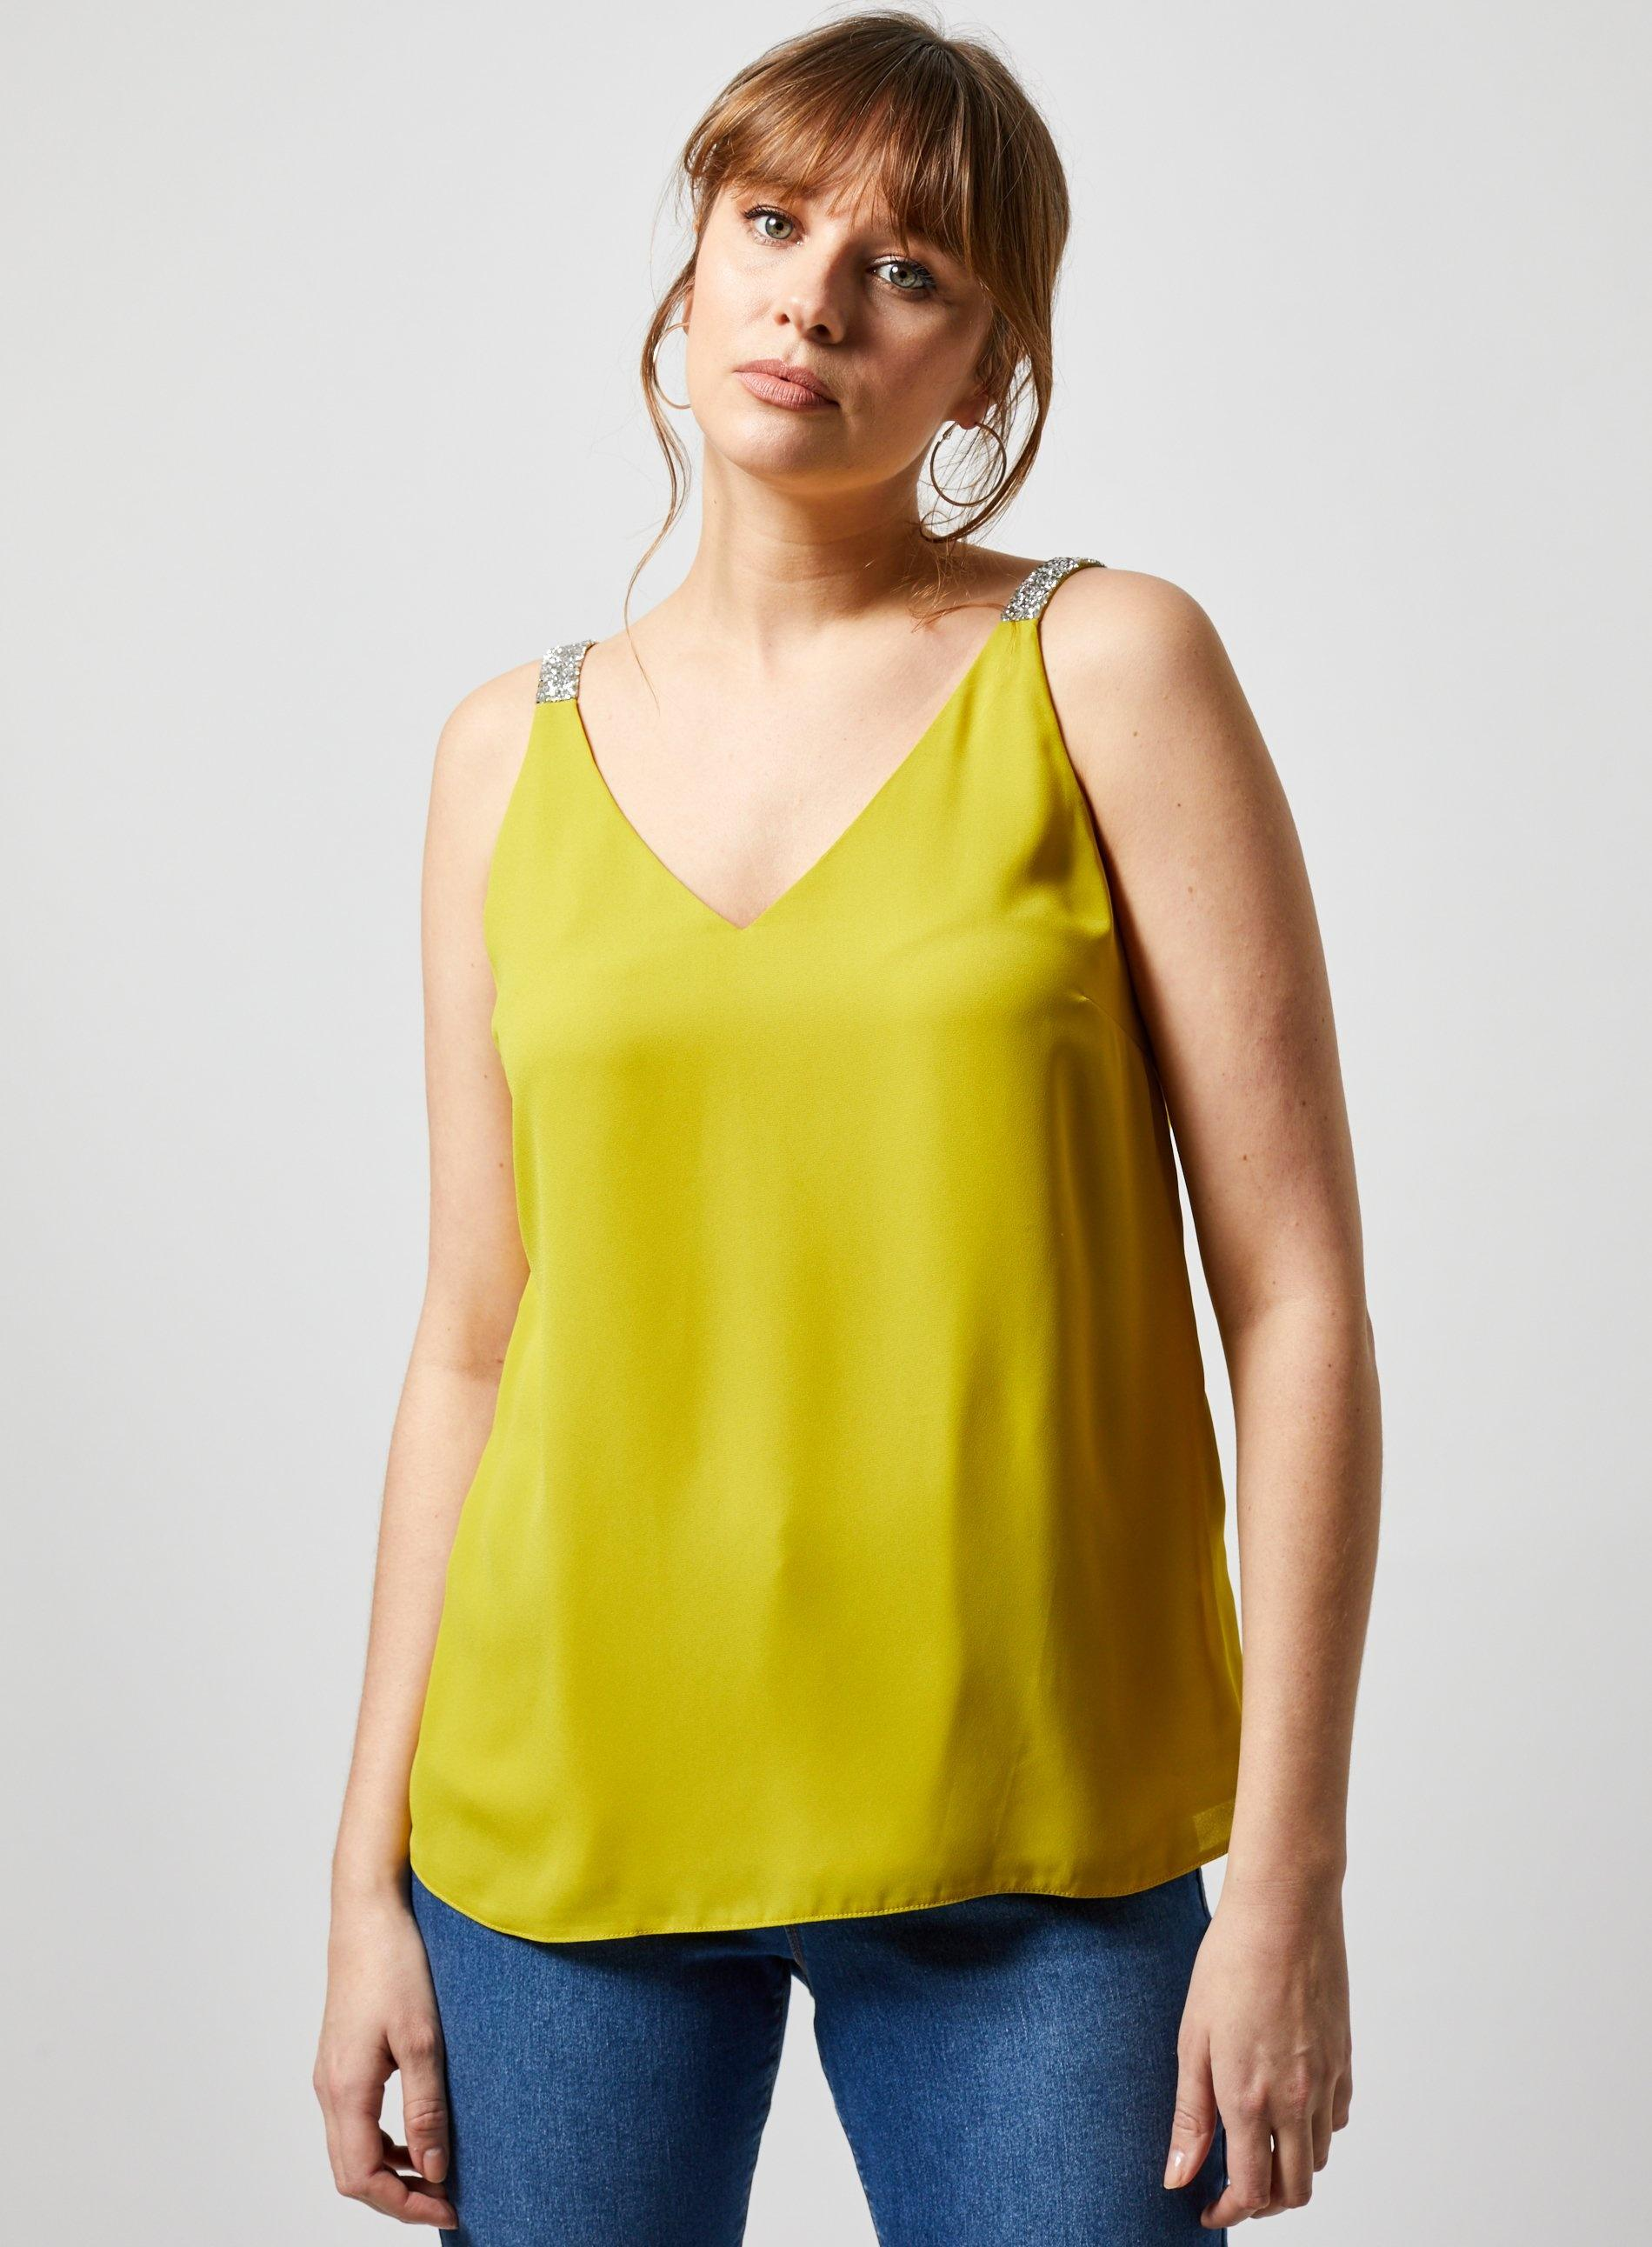 8660bb76 Dorothy Perkins - Green Lime Glitter Strap Camisole Top - Lyst. View  fullscreen